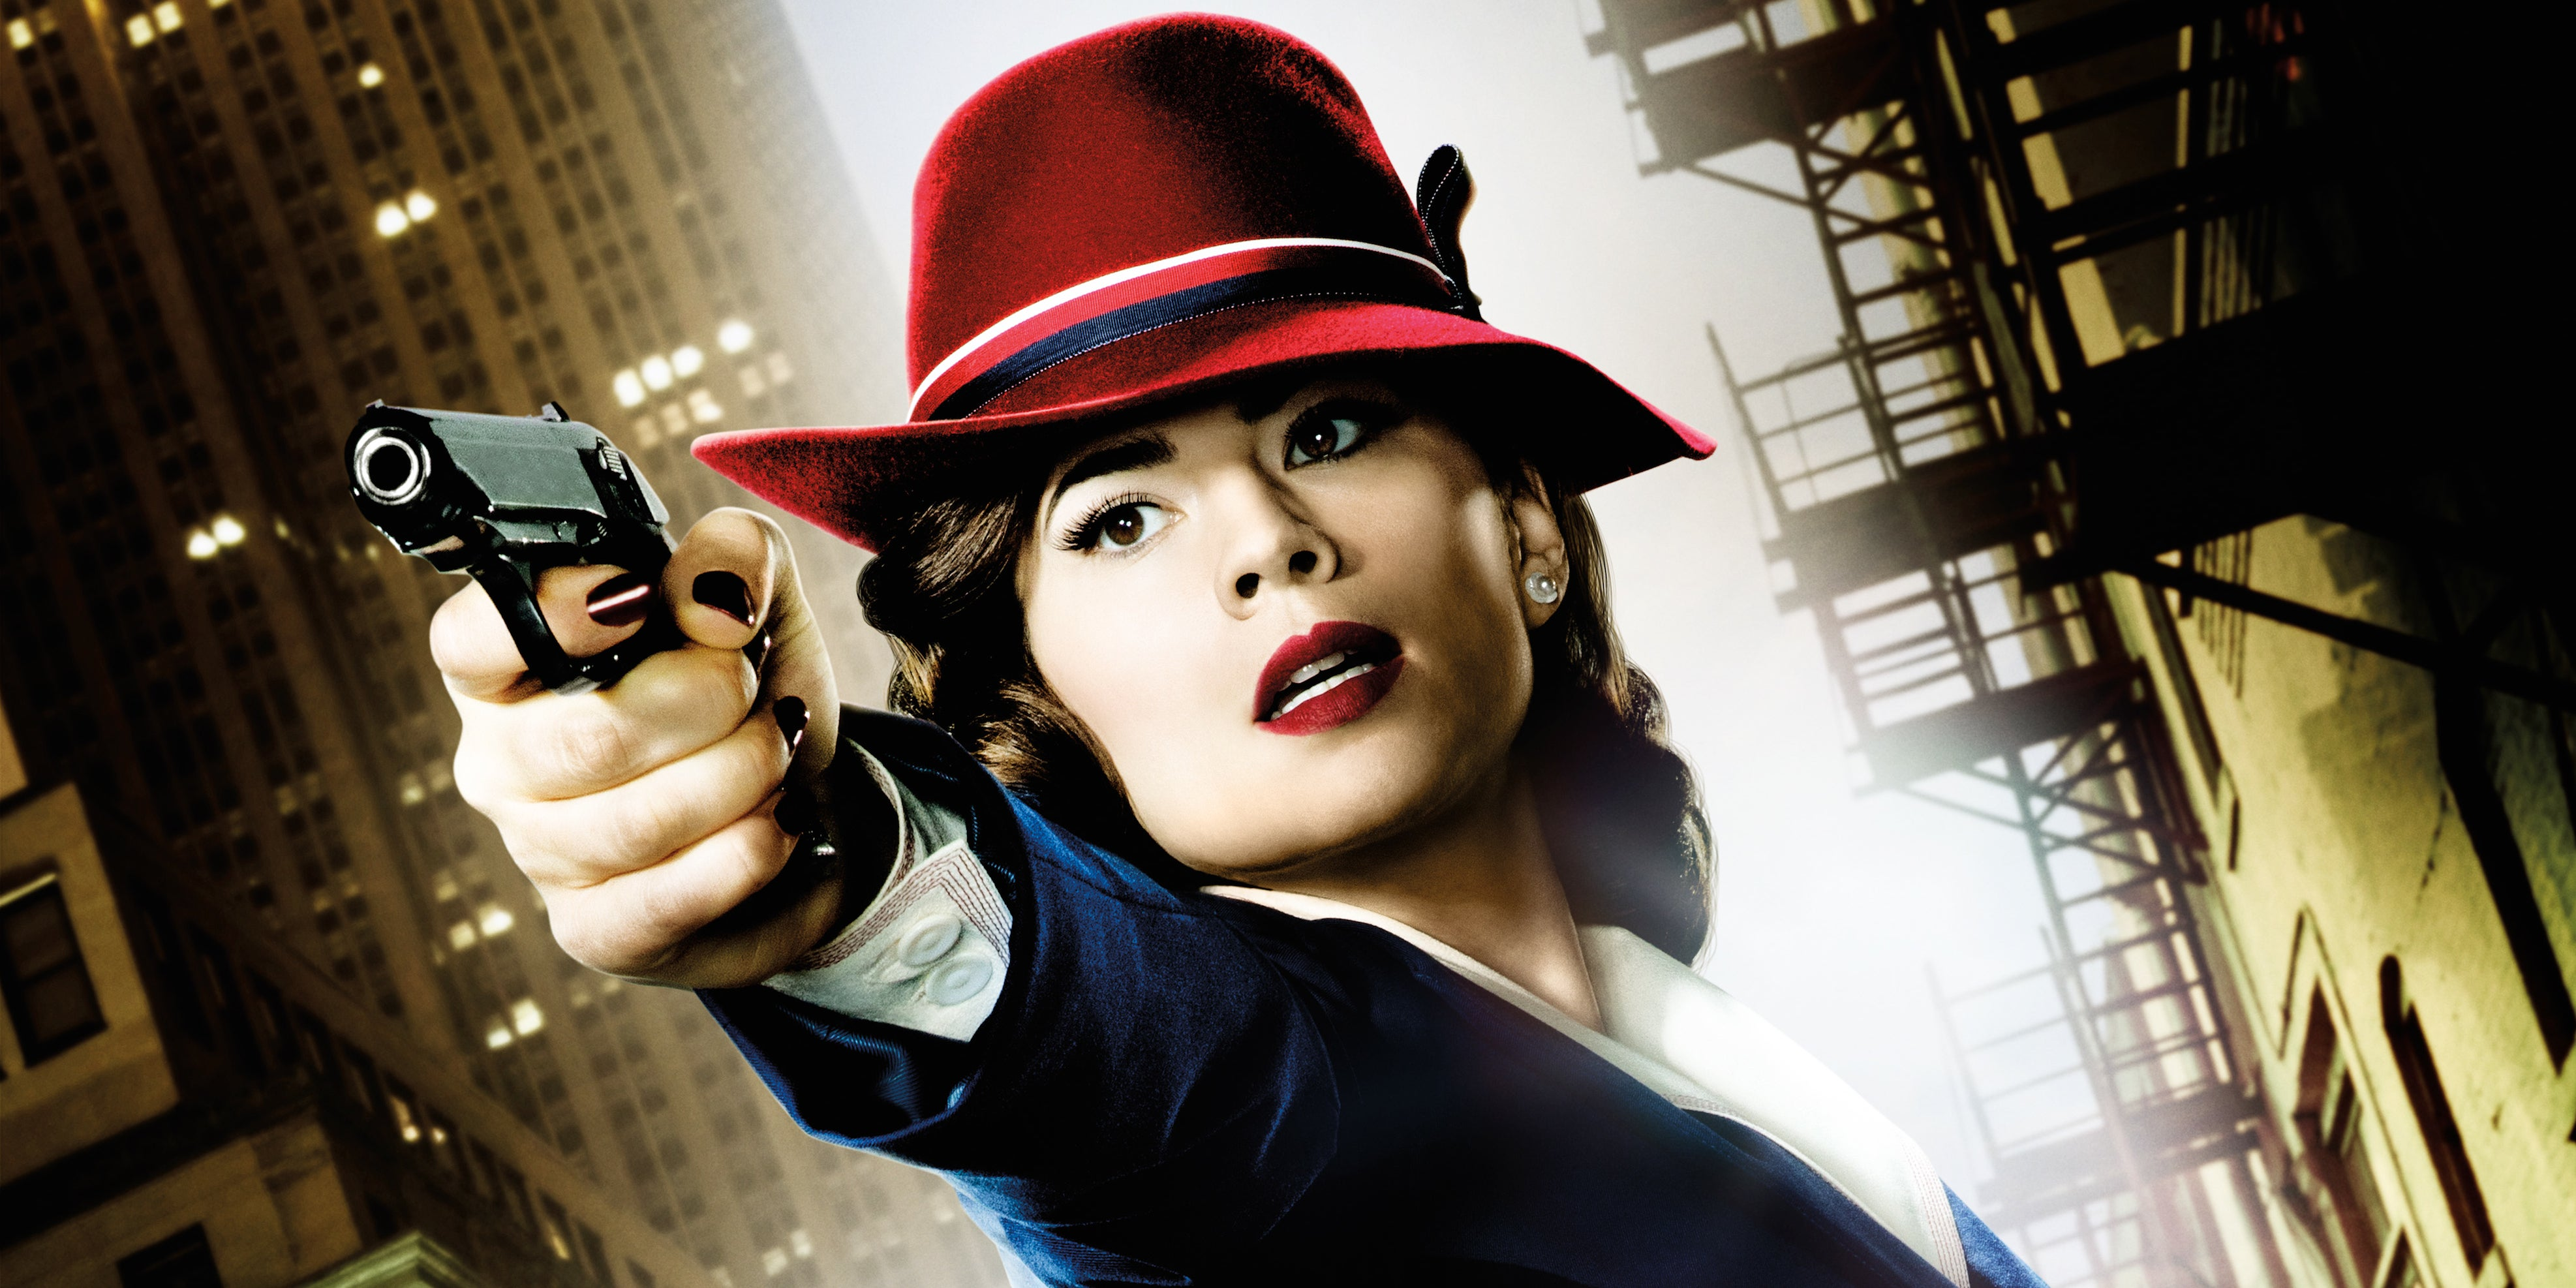 A Third Season For Agent Carter Is Looking Likely